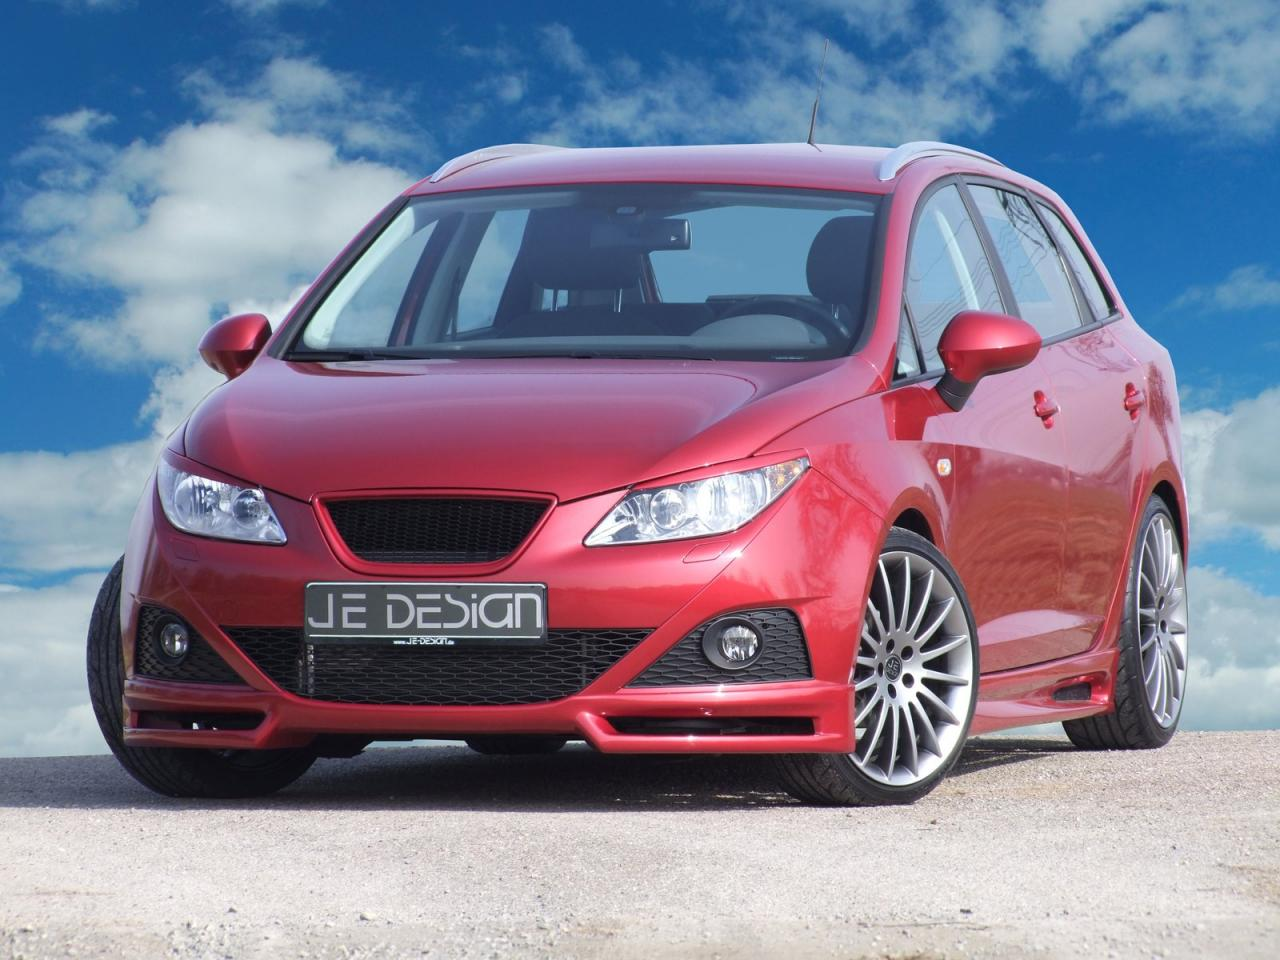 Seat Ibiza ST by JE Design